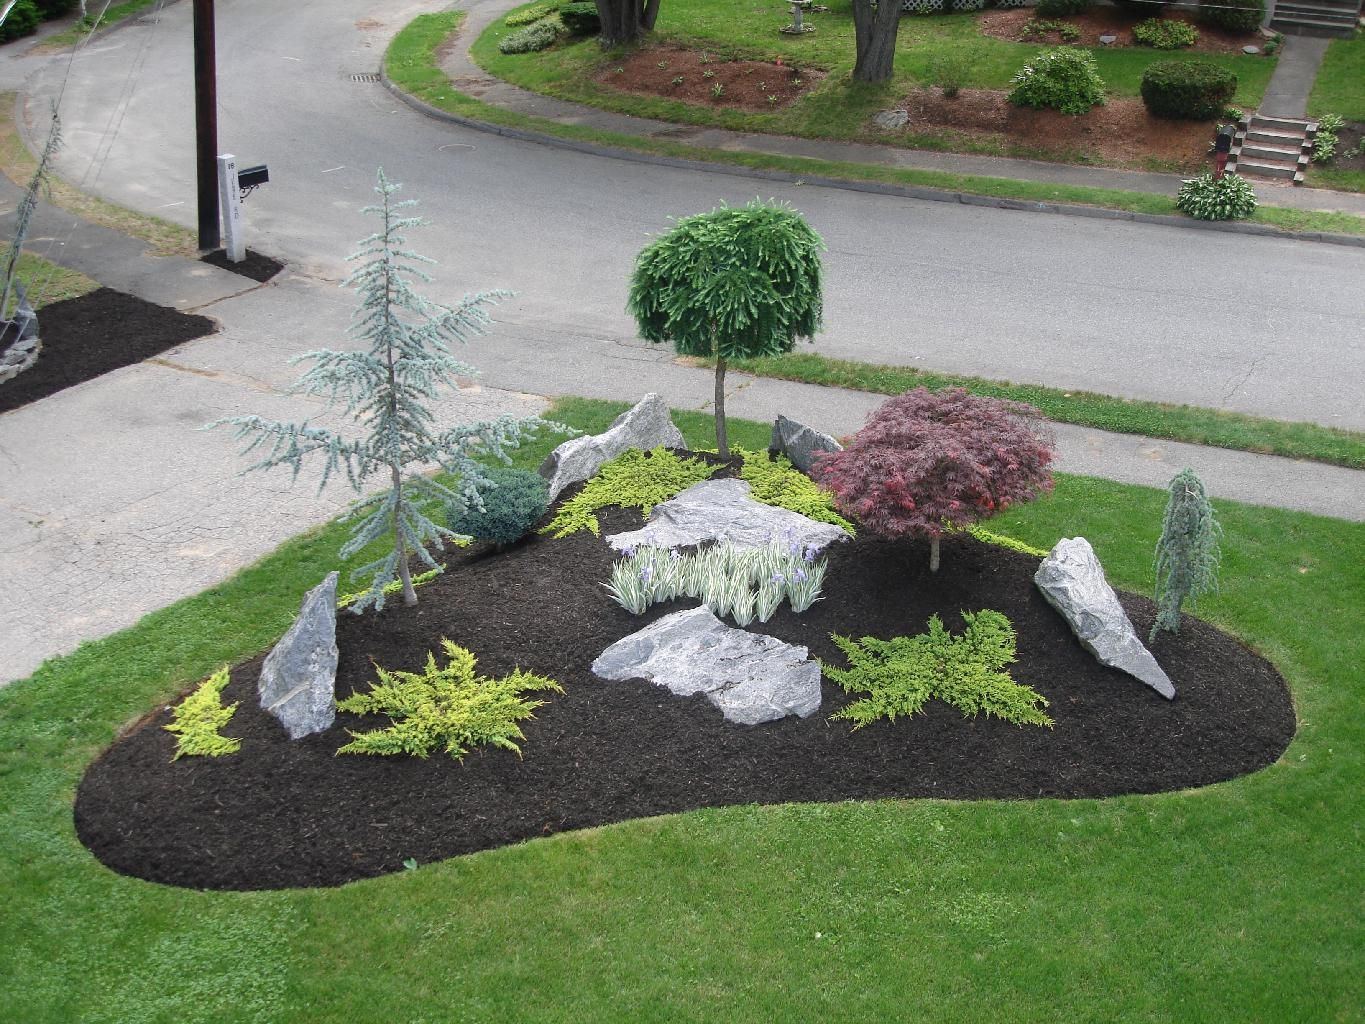 Simple landscape designs with rock beds google search for Simple flower garden design